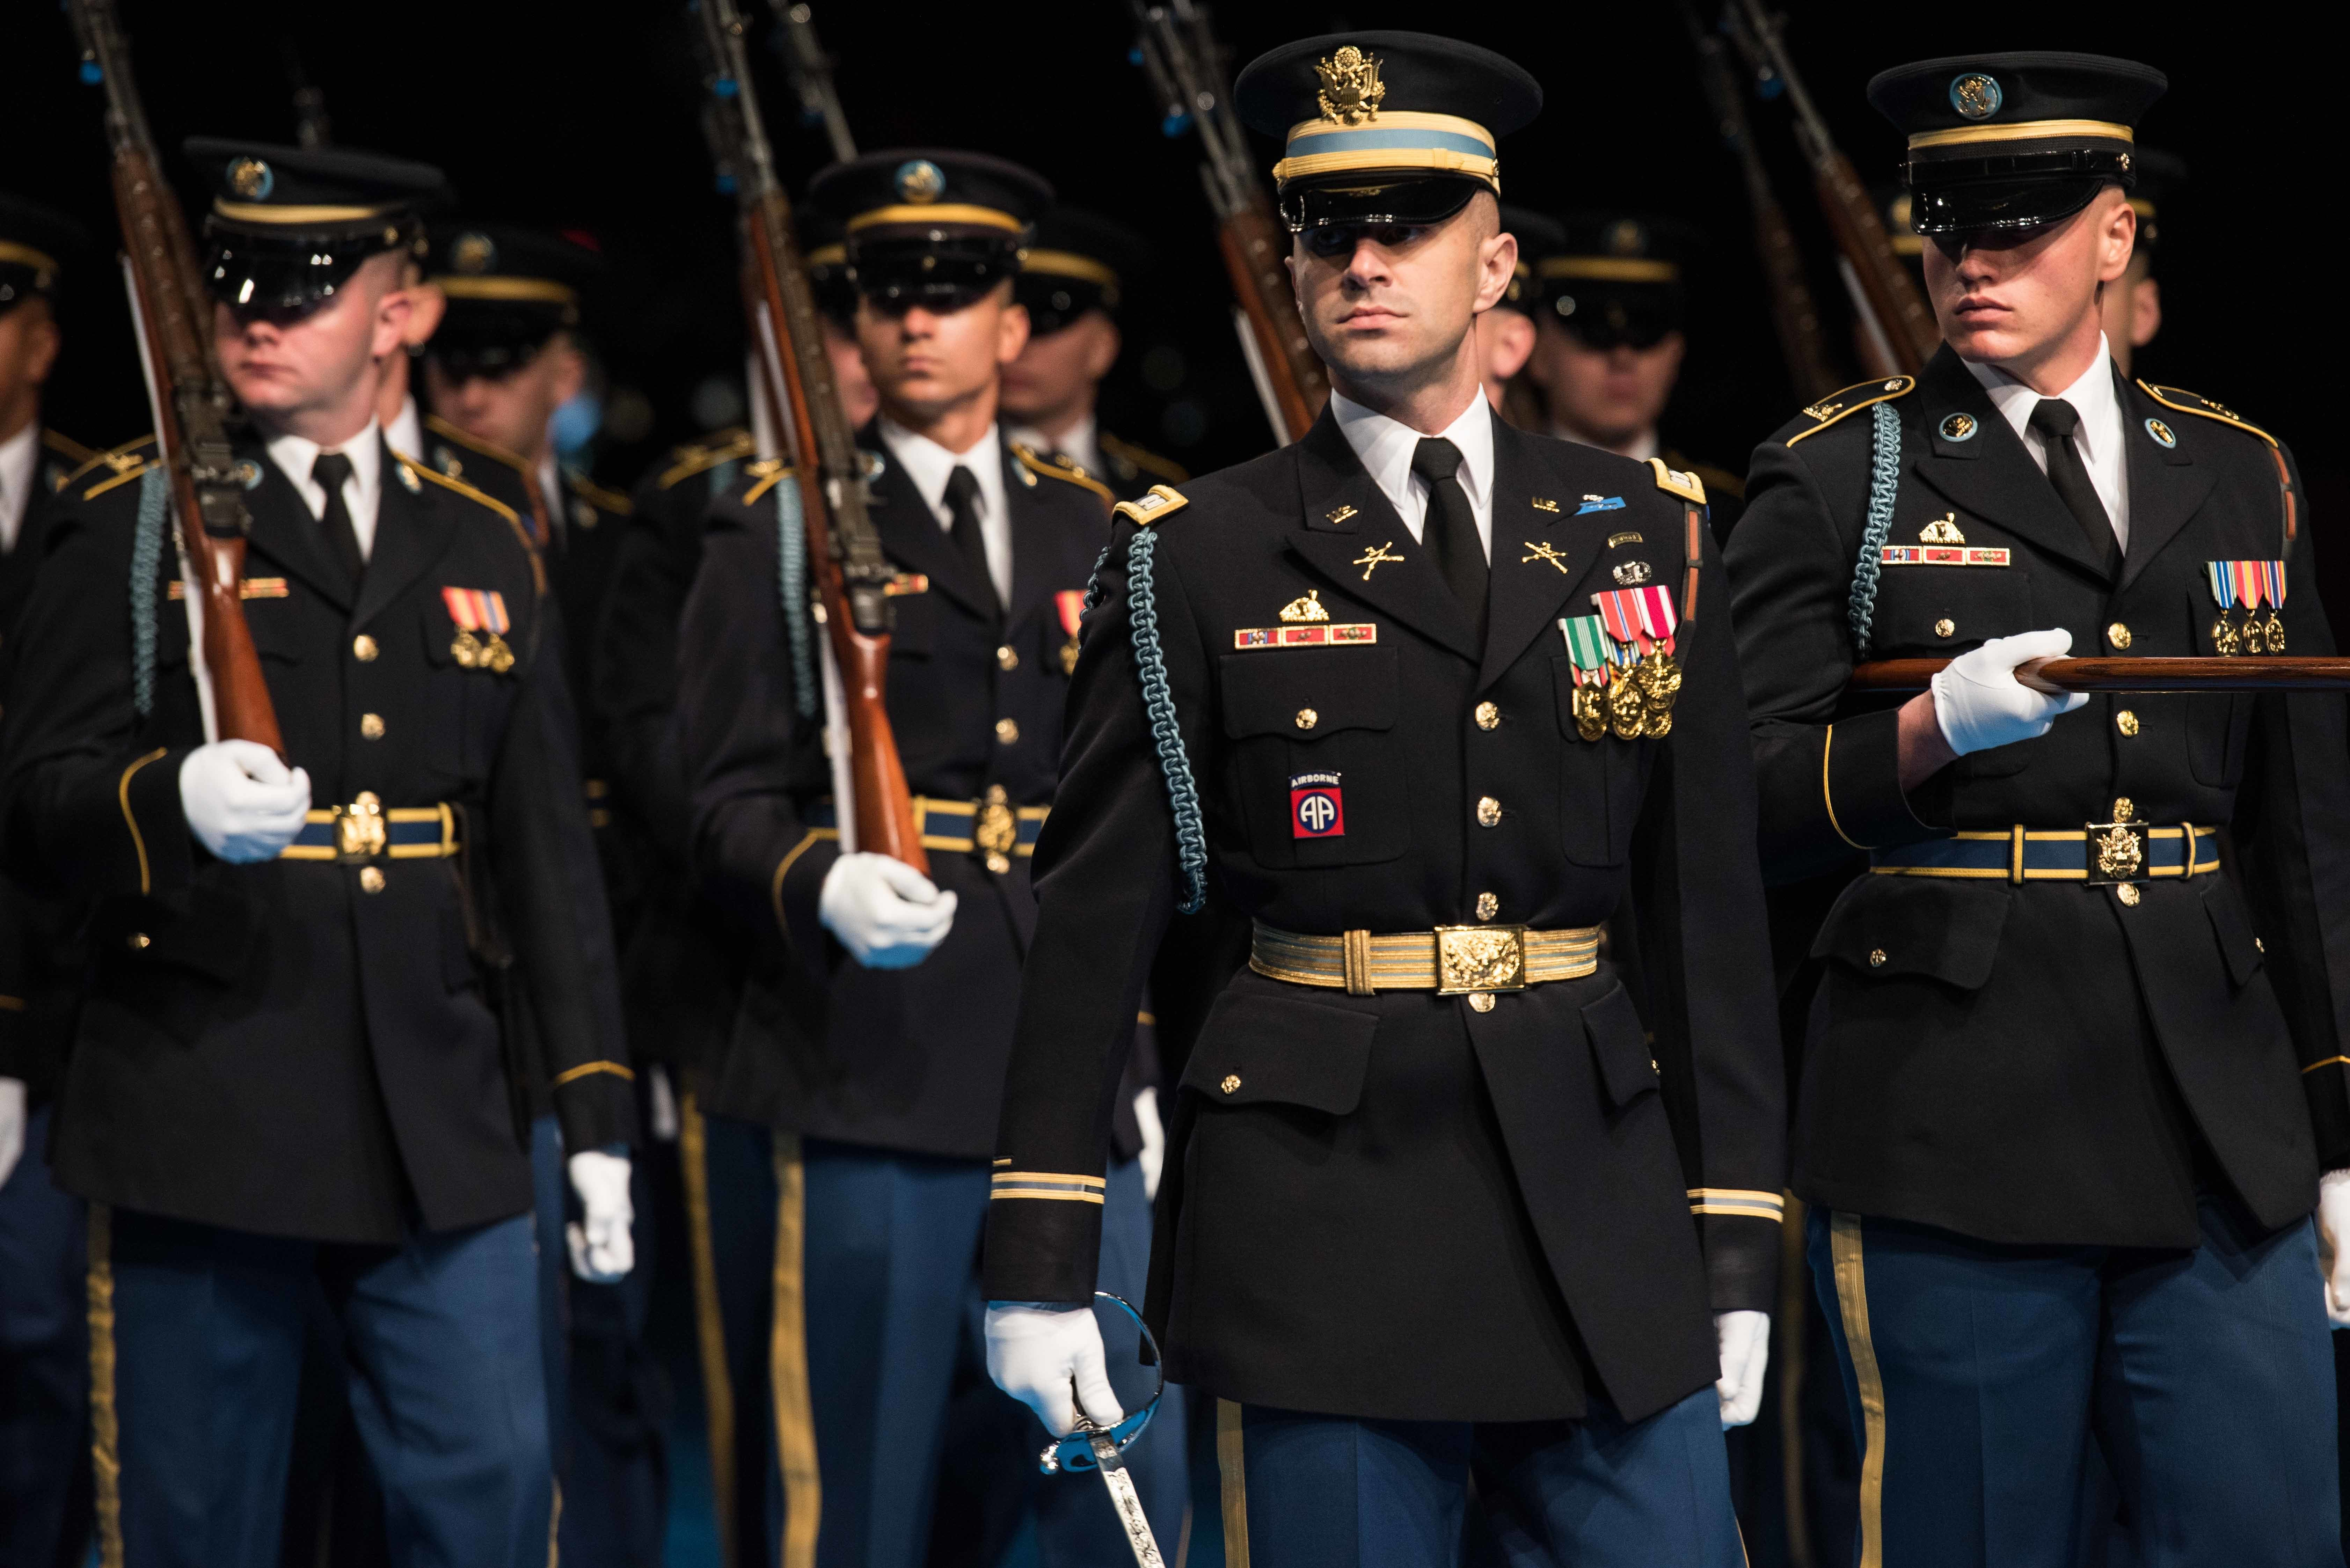 redesigned army uniforms site provides guidance for